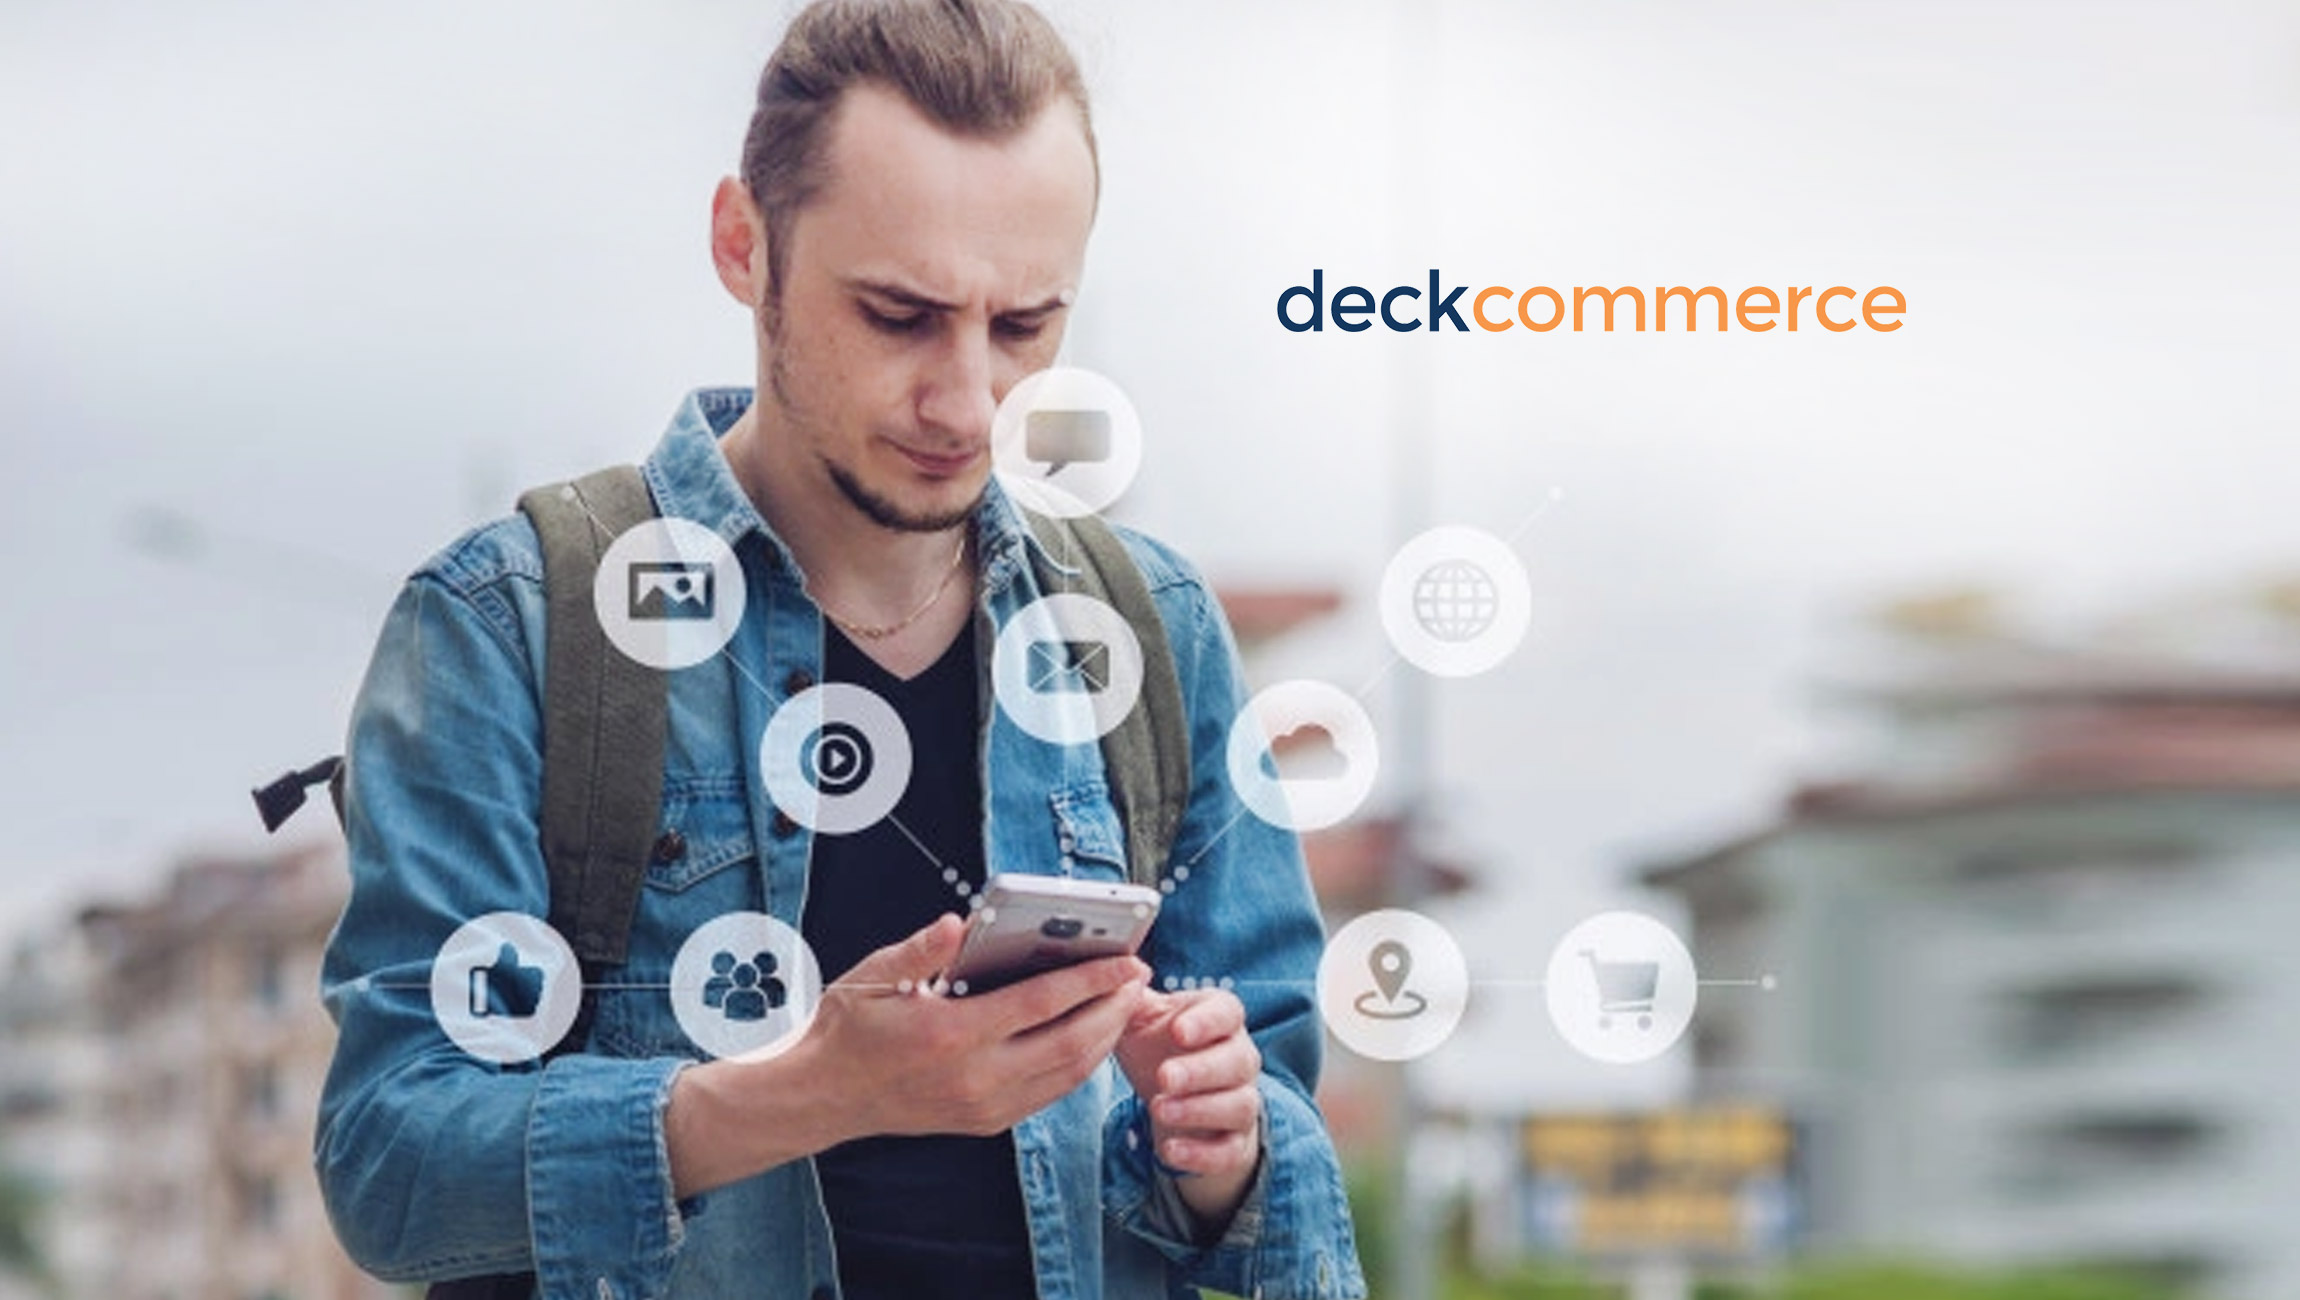 Deck Commerce Recognized In Now Tech: Omnichannel Order Management Systems, Q1 2021